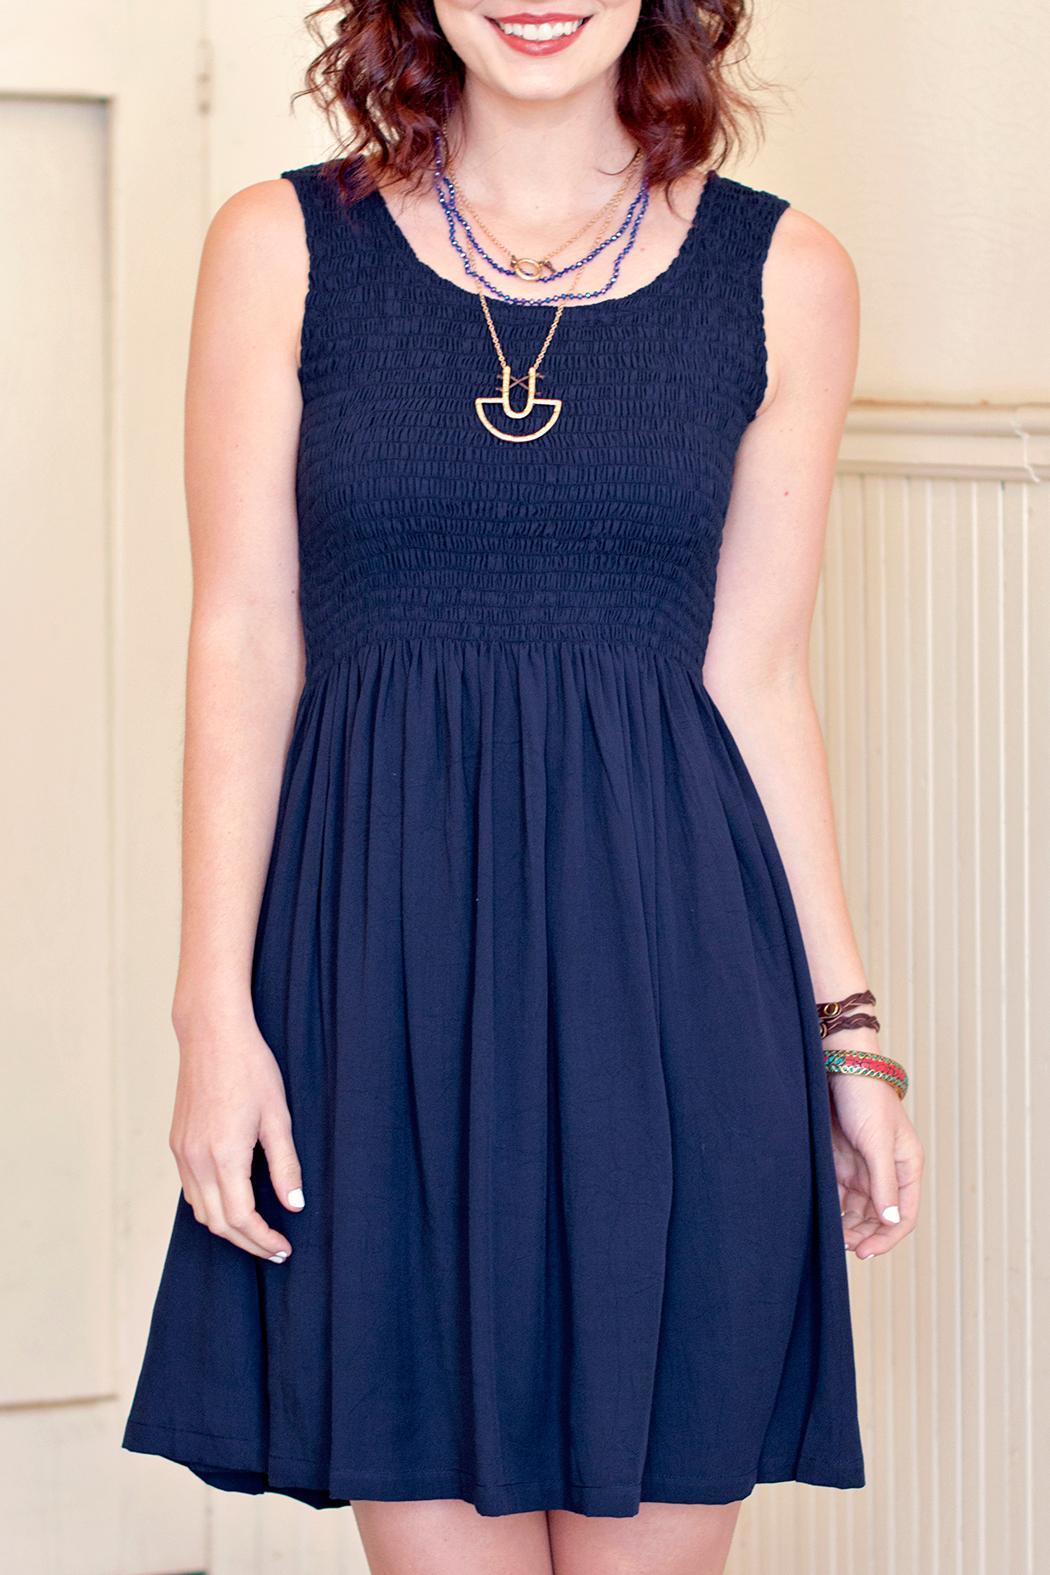 Go fish clothing navy blue dress from florida by go fish for Go fish clothing